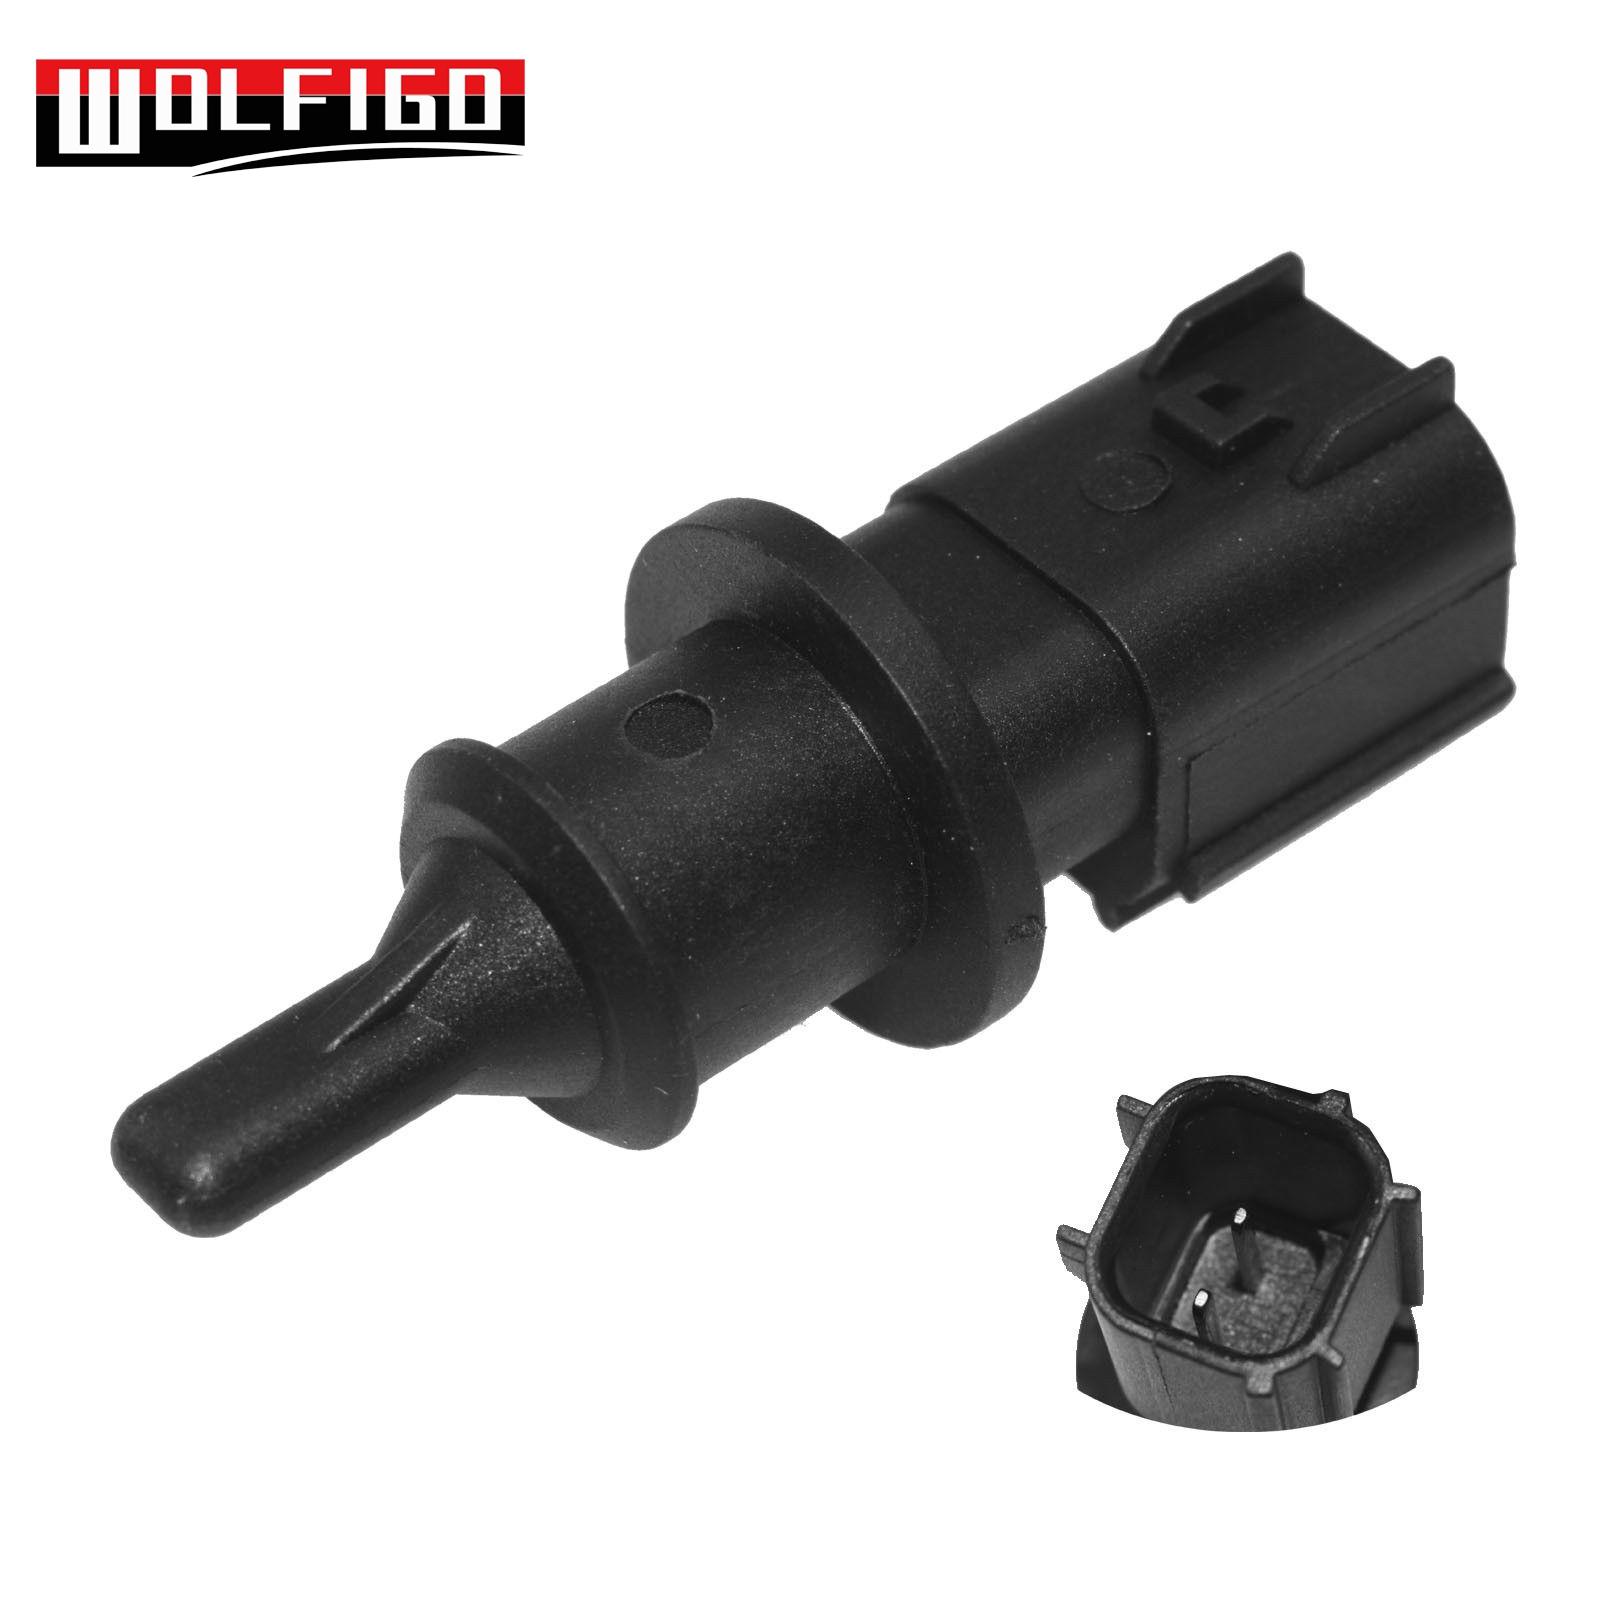 WOLFIGO For 2000-2018 Chrysler Jeep Dodge Ambient Air Charge Temperature Sensor 5149264AB,,5293138,5149264AAWOLFIGO For 2000-2018 Chrysler Jeep Dodge Ambient Air Charge Temperature Sensor 5149264AB,,5293138,5149264AA